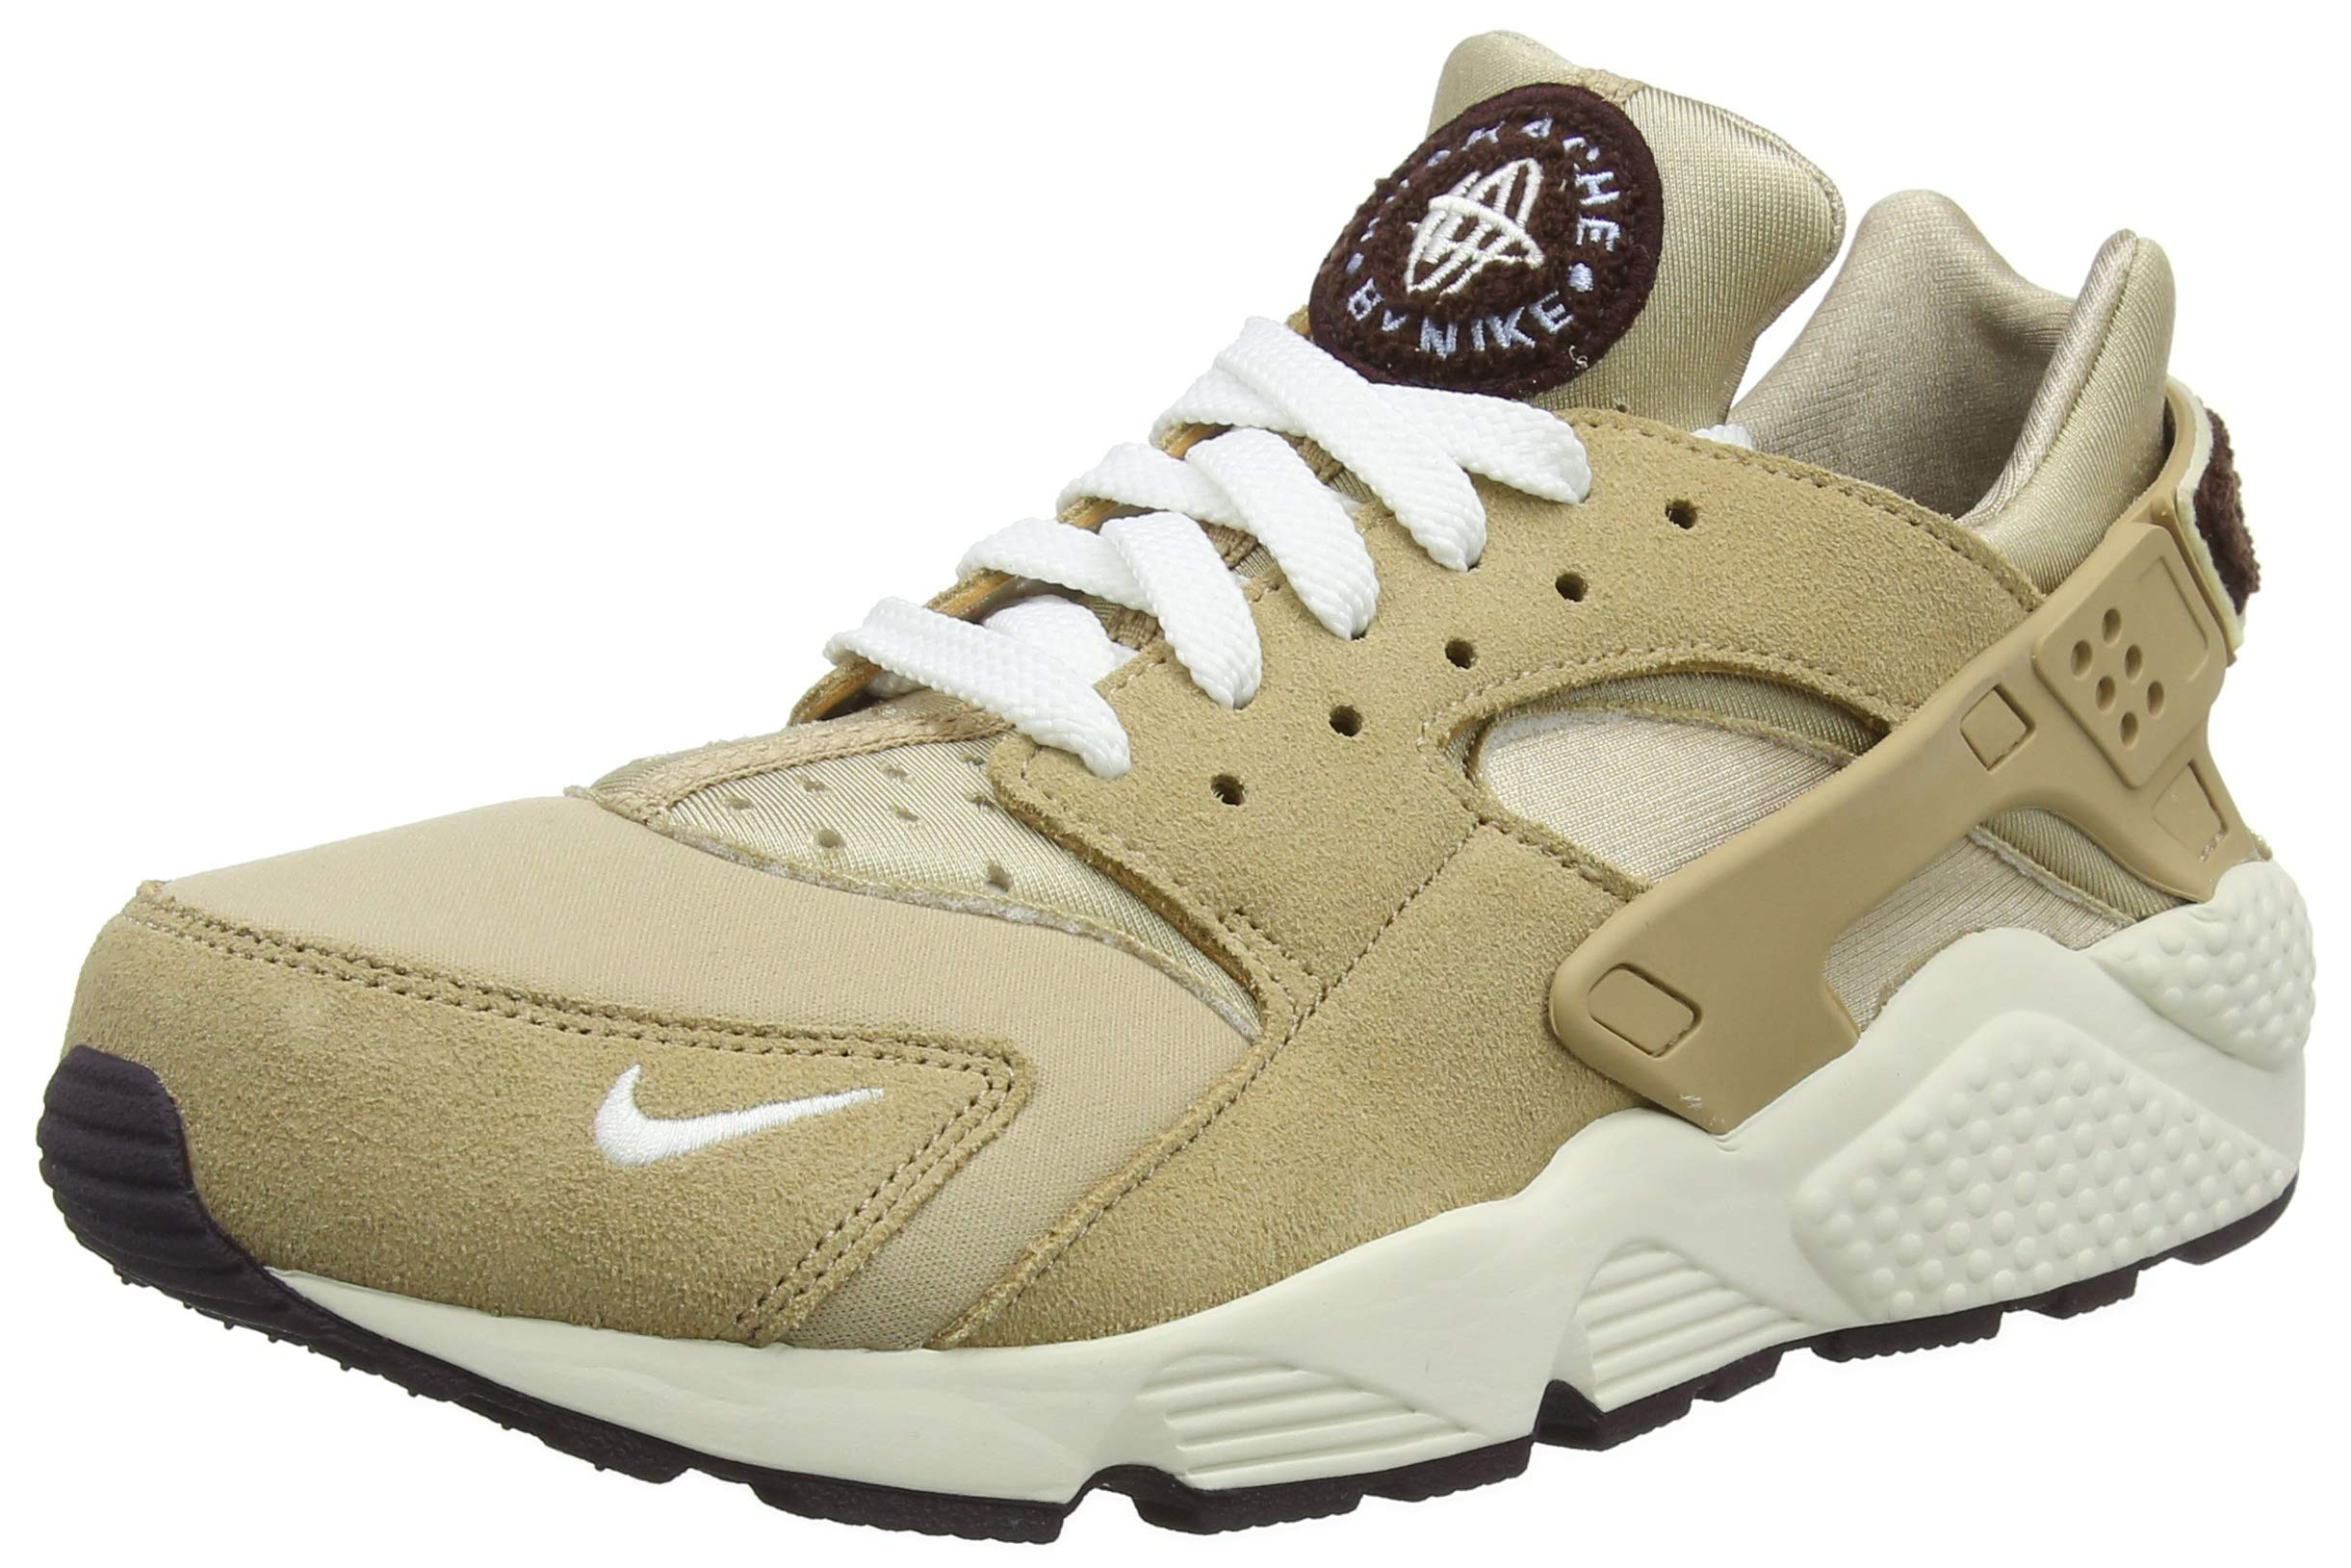 d241d1752ba6 Galleon - Nike Men s Air Huarache Run PRM Desert Burgundy Ash Royal  Tint Sail 704830-202 (Size  11.5)